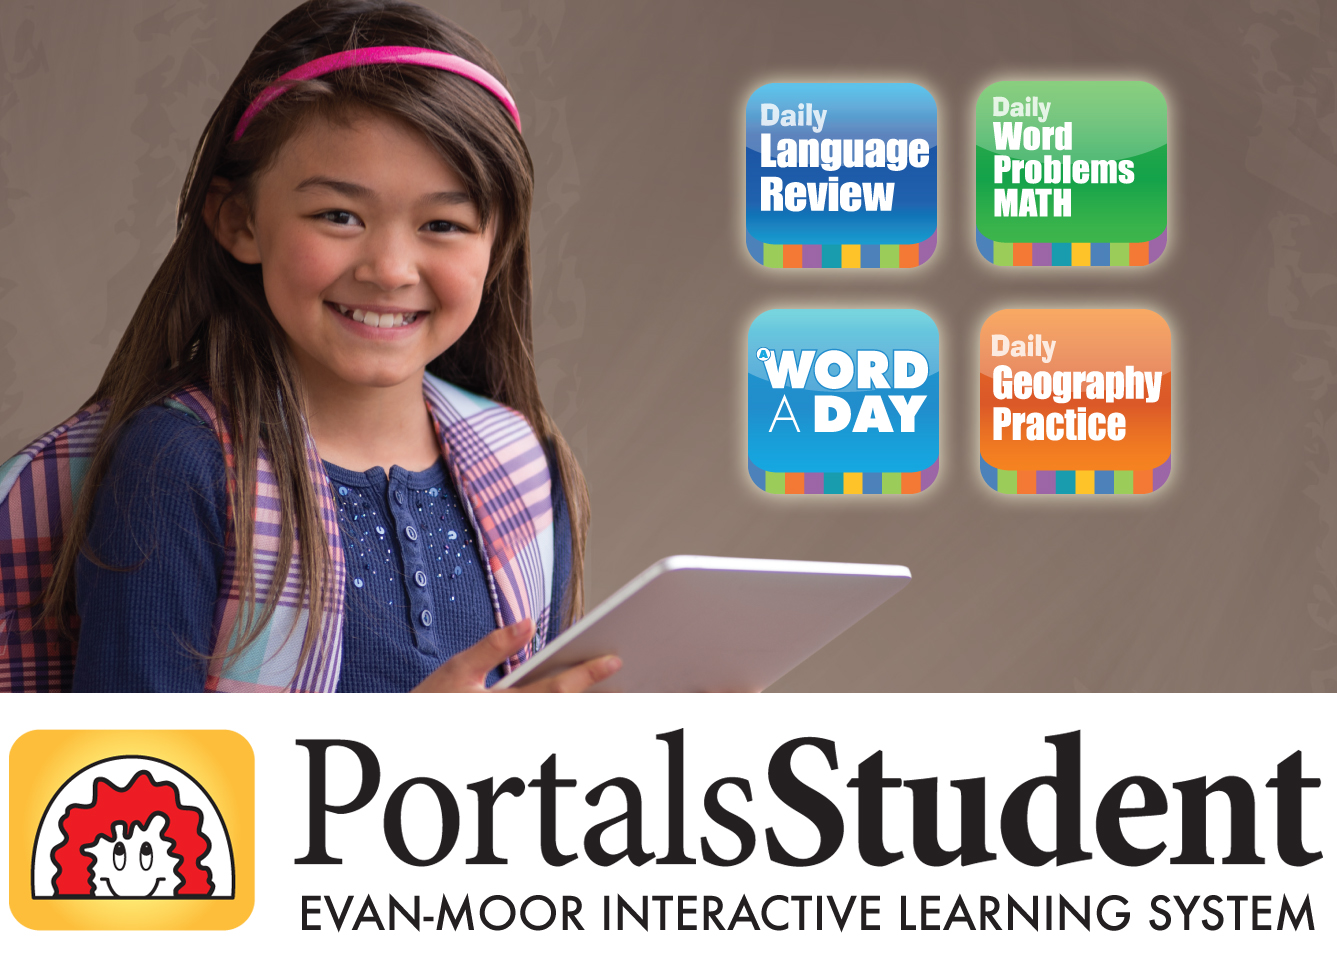 Evan-Moor's Portals Student is Now Available for Android Devices and